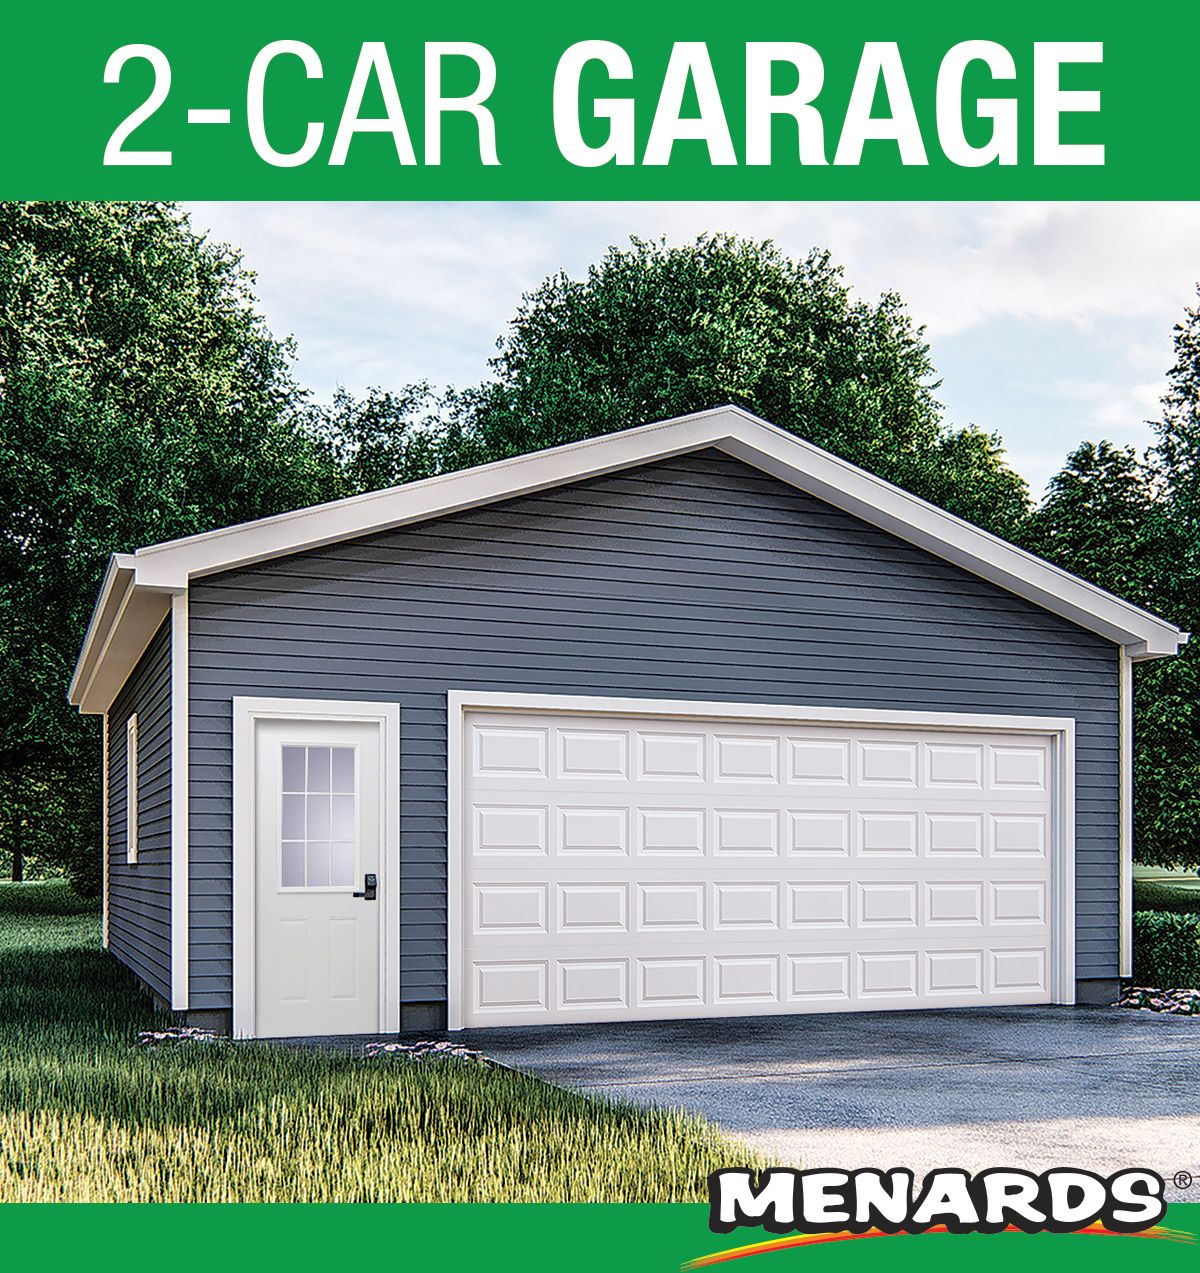 2 Car Garage 24 X 24 X 9 Material List In 2020 2 Car Garage Plans Car Garage Garage